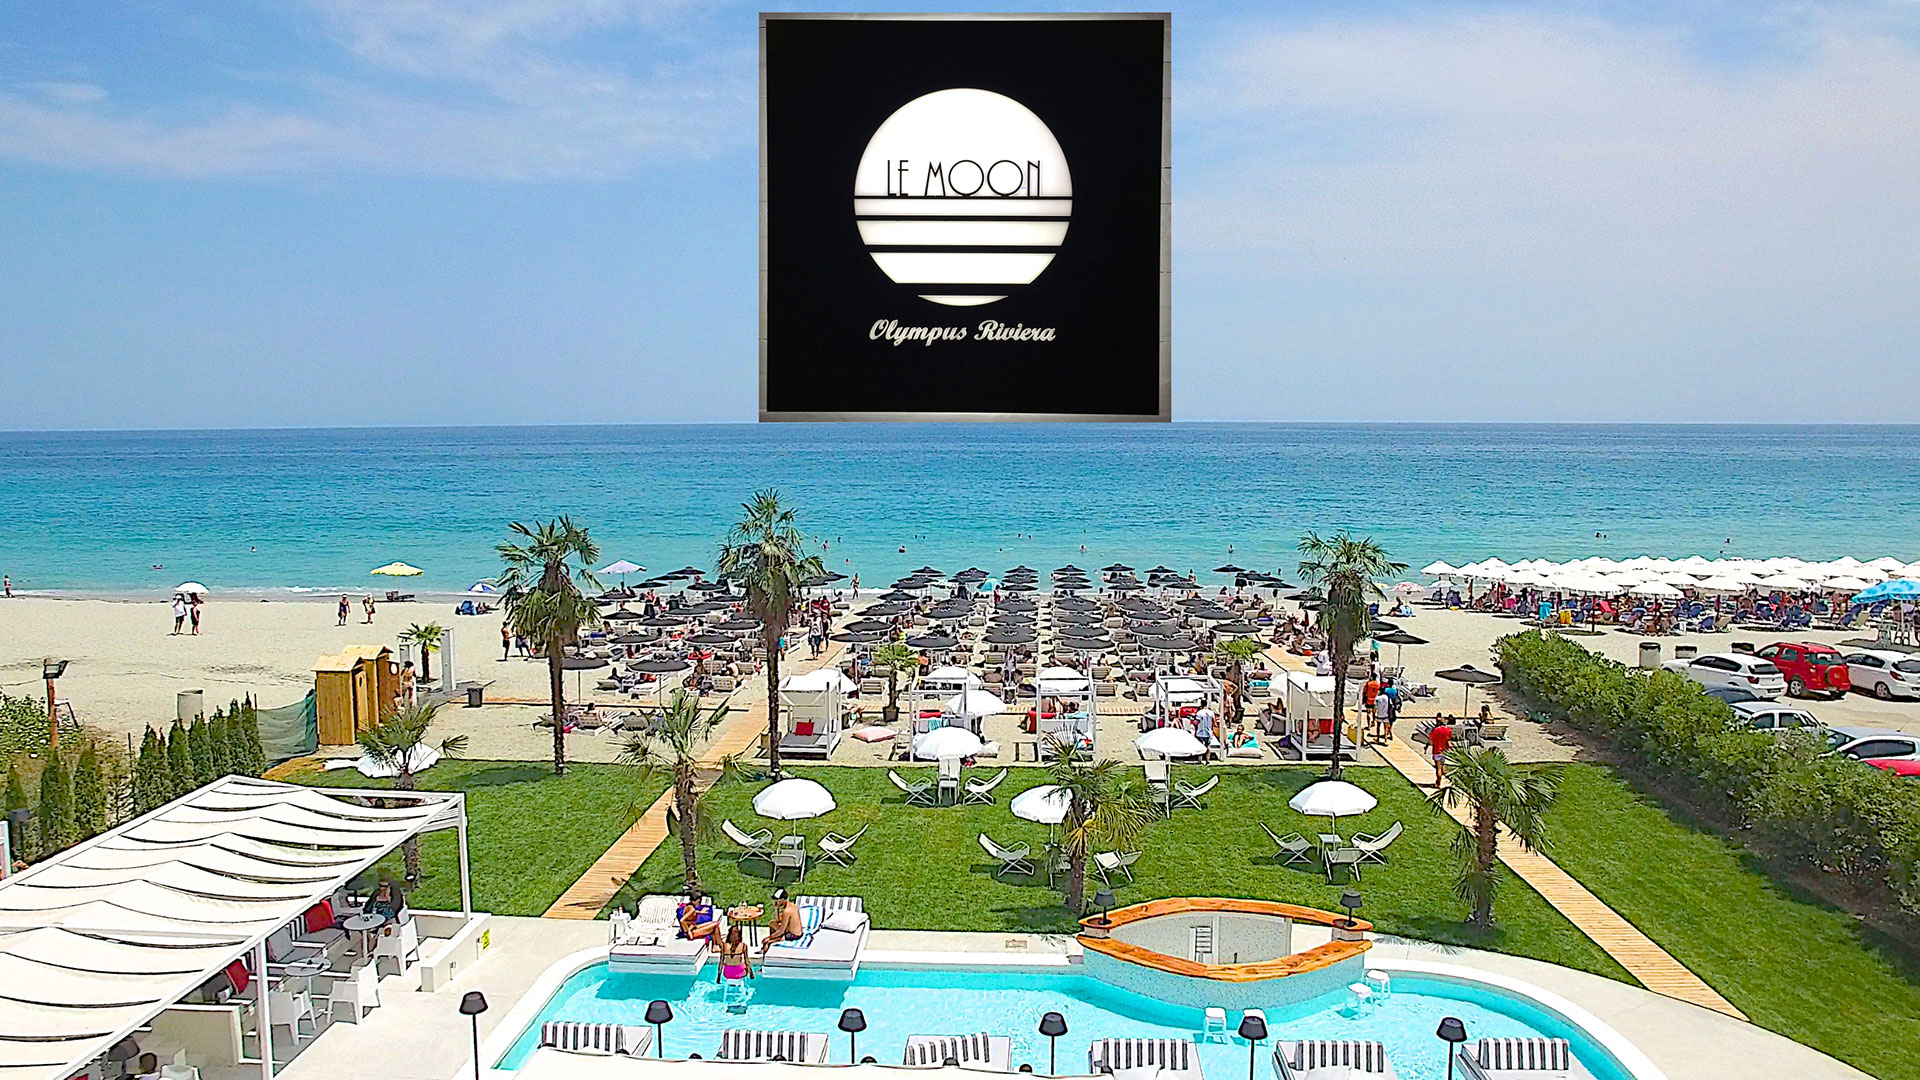 Le Moon Luxury Seaside Bar & Restaurant